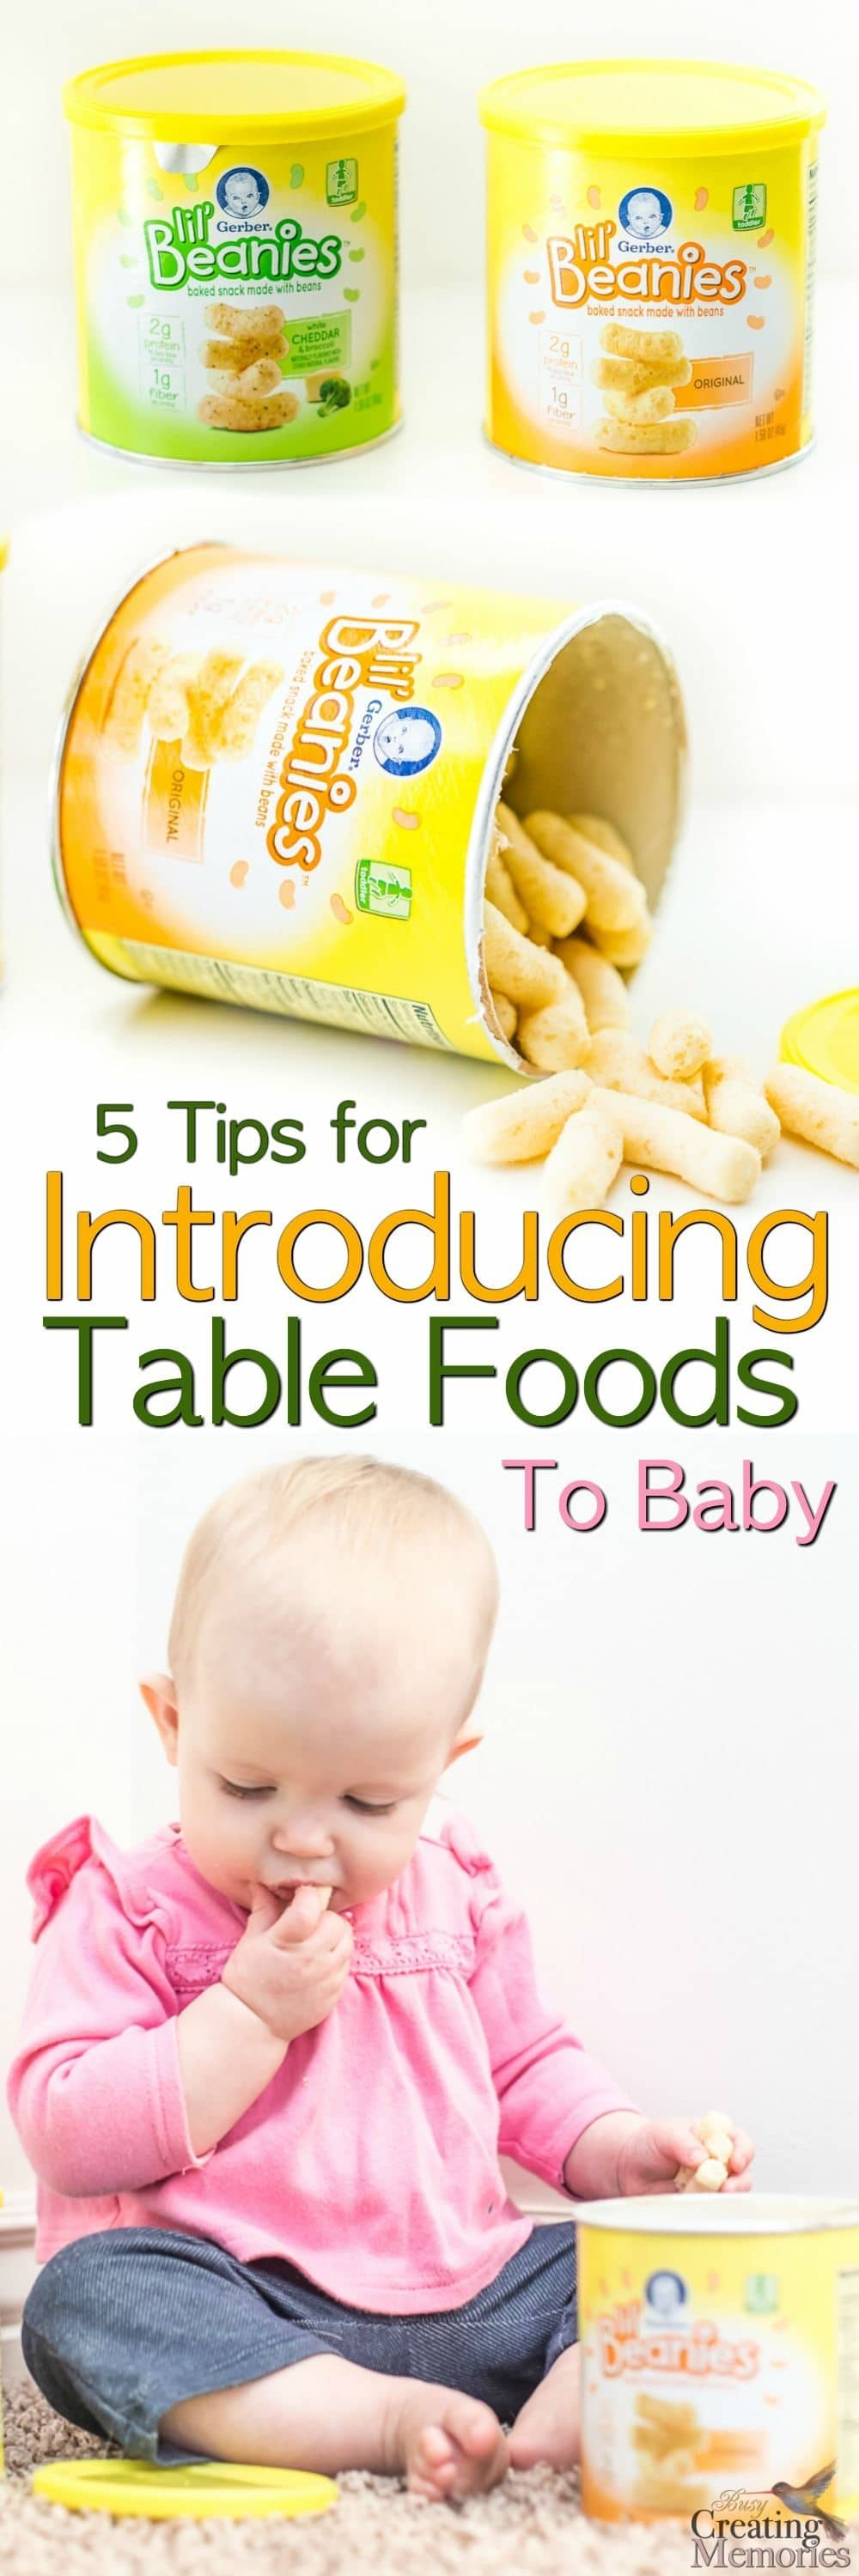 Is baby ready for table foods? Follow these top 5 tips to ensure the transition to introducing table foods to baby is easy and full of great food they will love